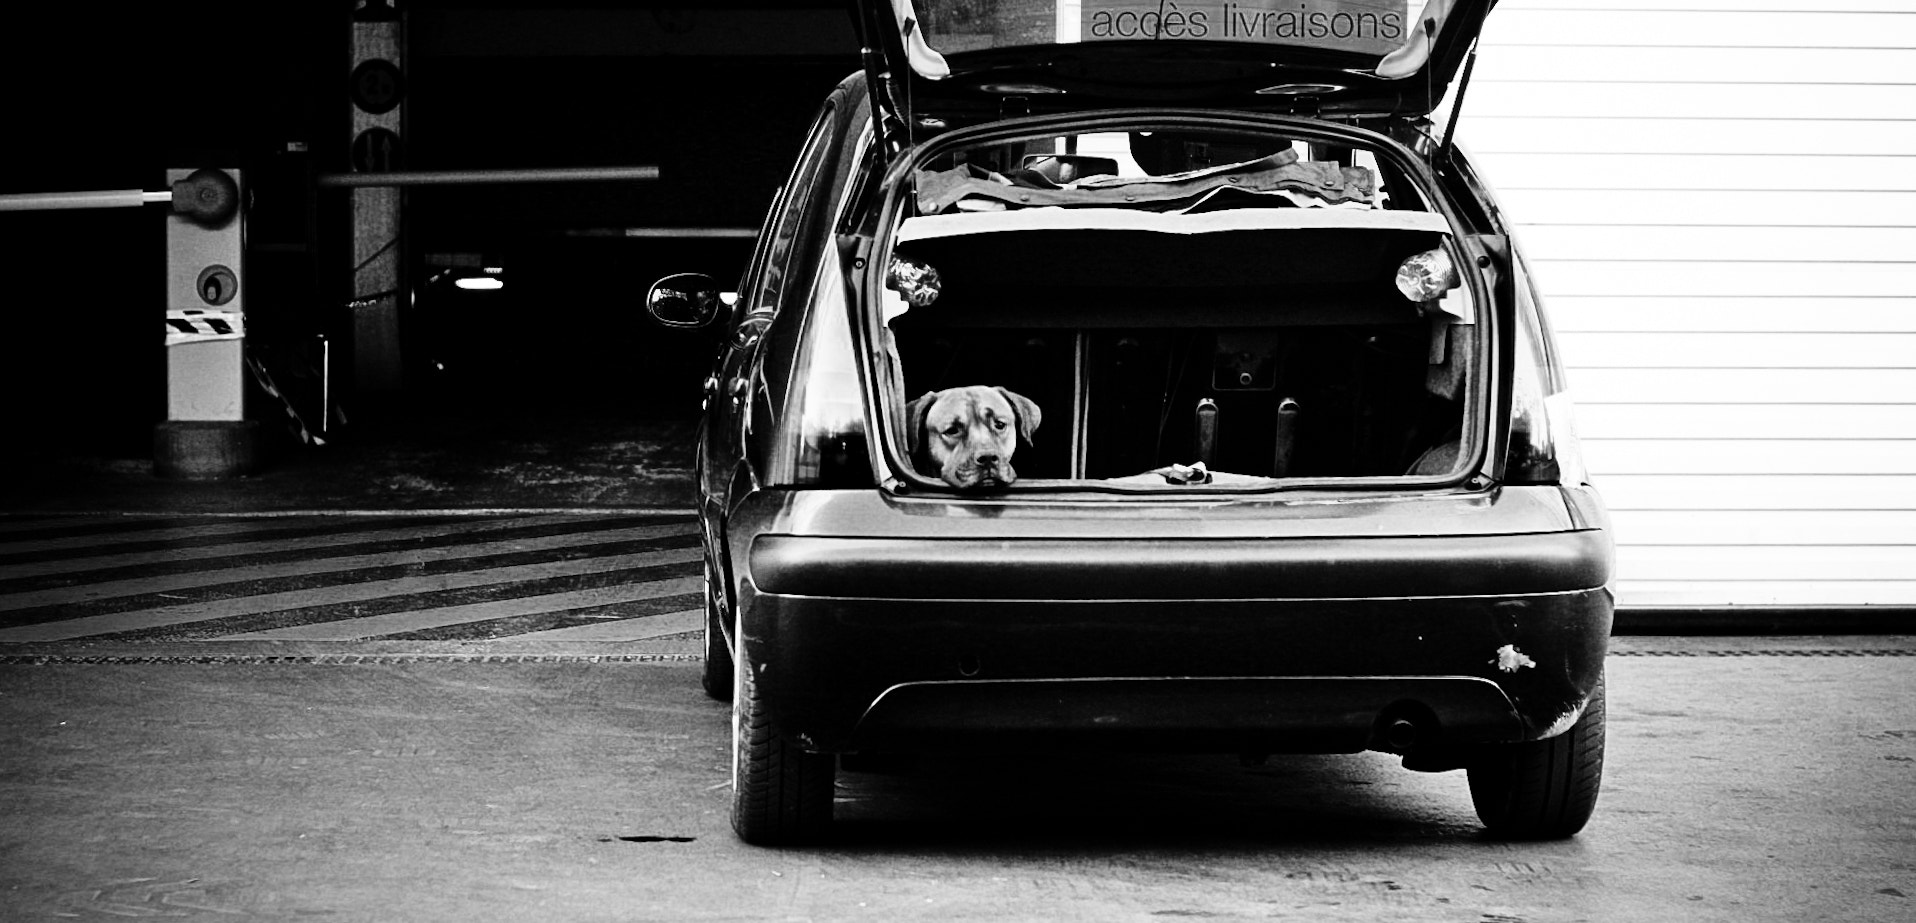 Photograph Dog In The Trunk by Mehdi Sersab on 500px